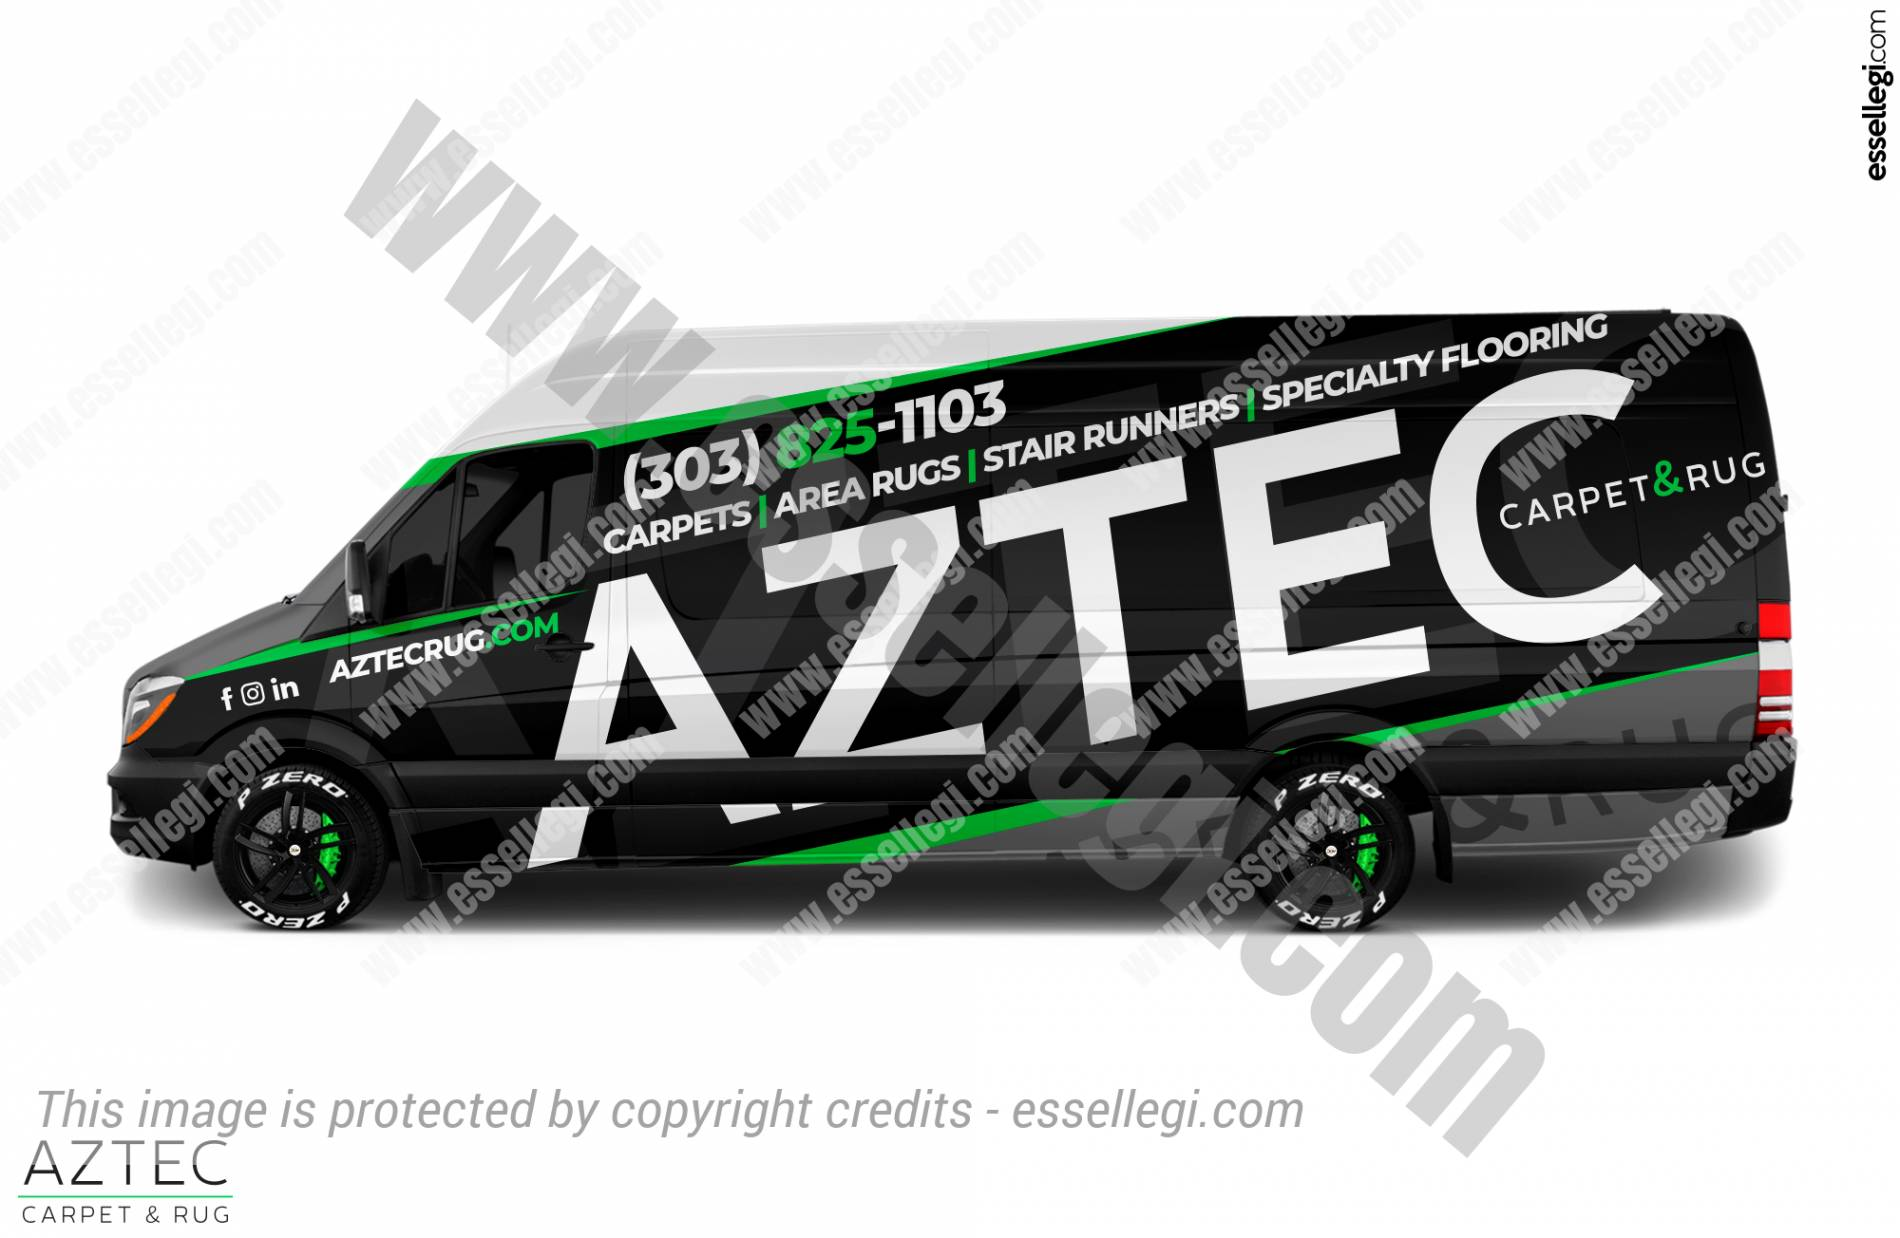 MERCEDES SPRINTER | VAN WRAP DESIGN  🇺🇸